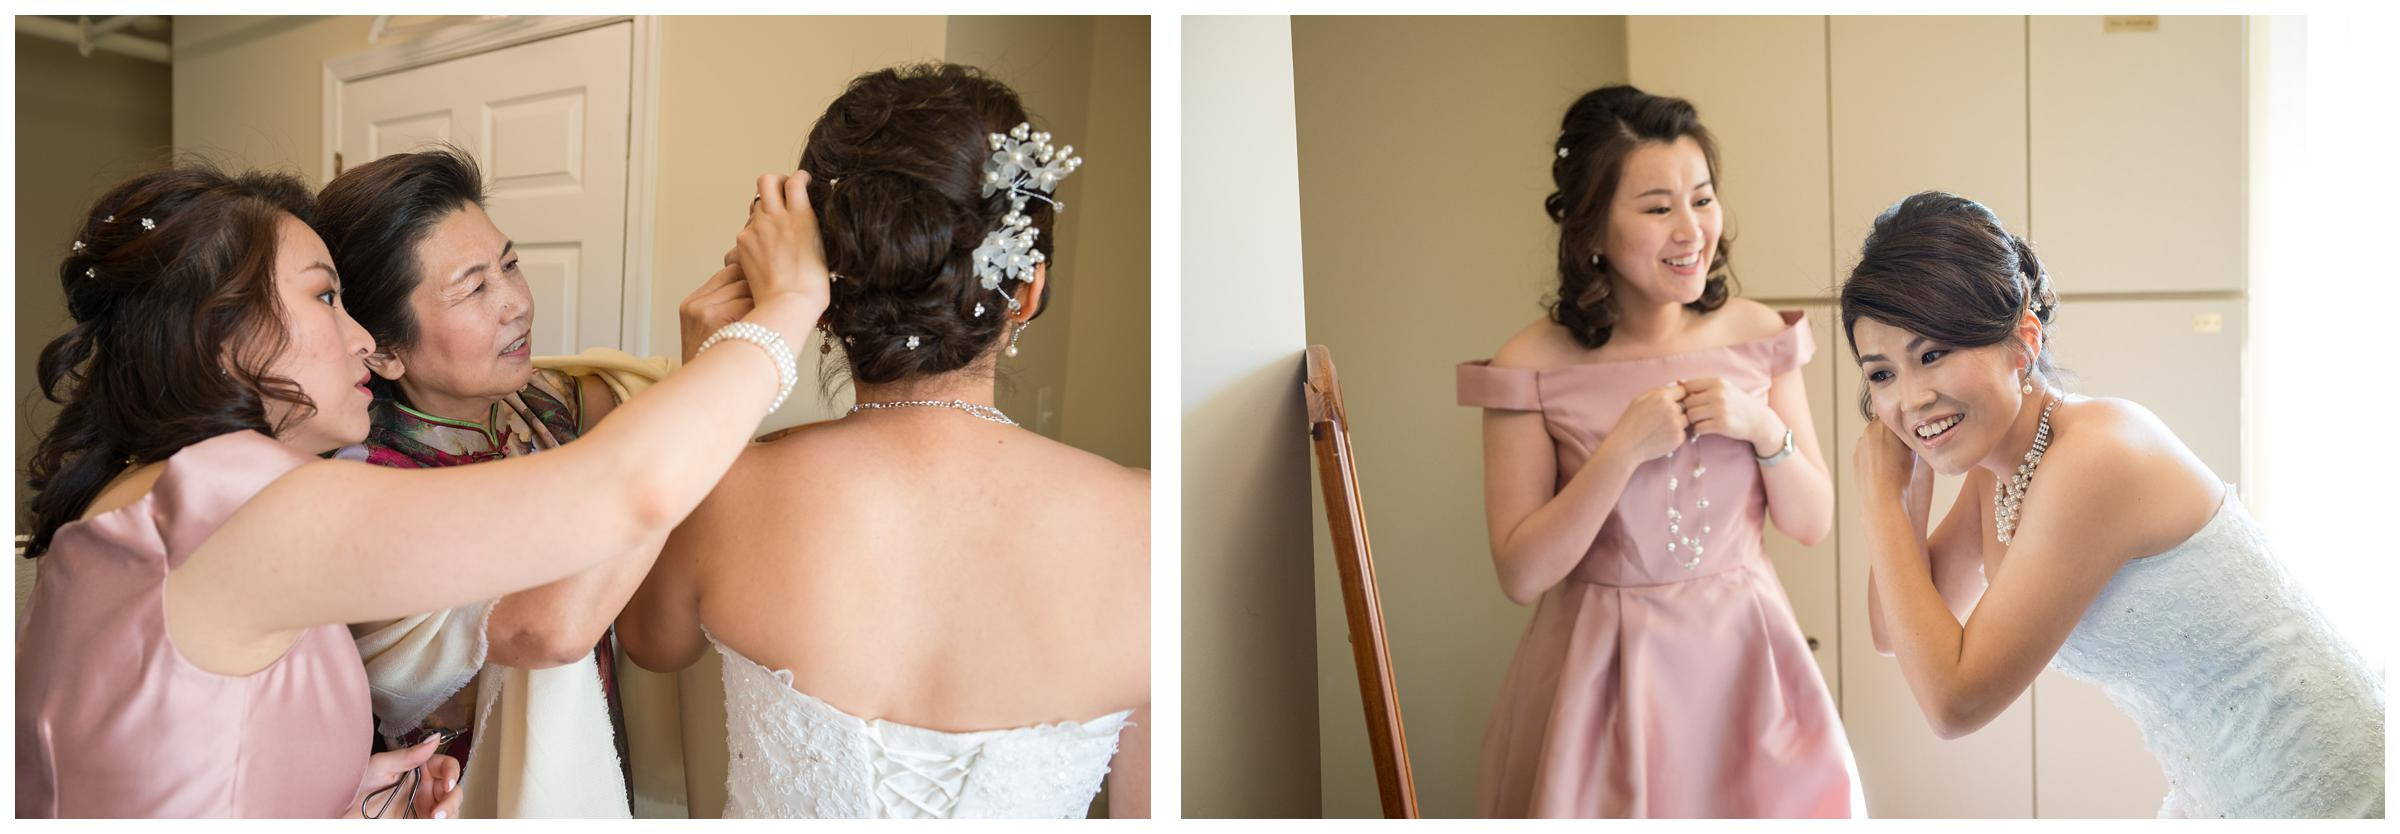 Bride getting dressed with bridesmaid and mom before wedding ceremony.